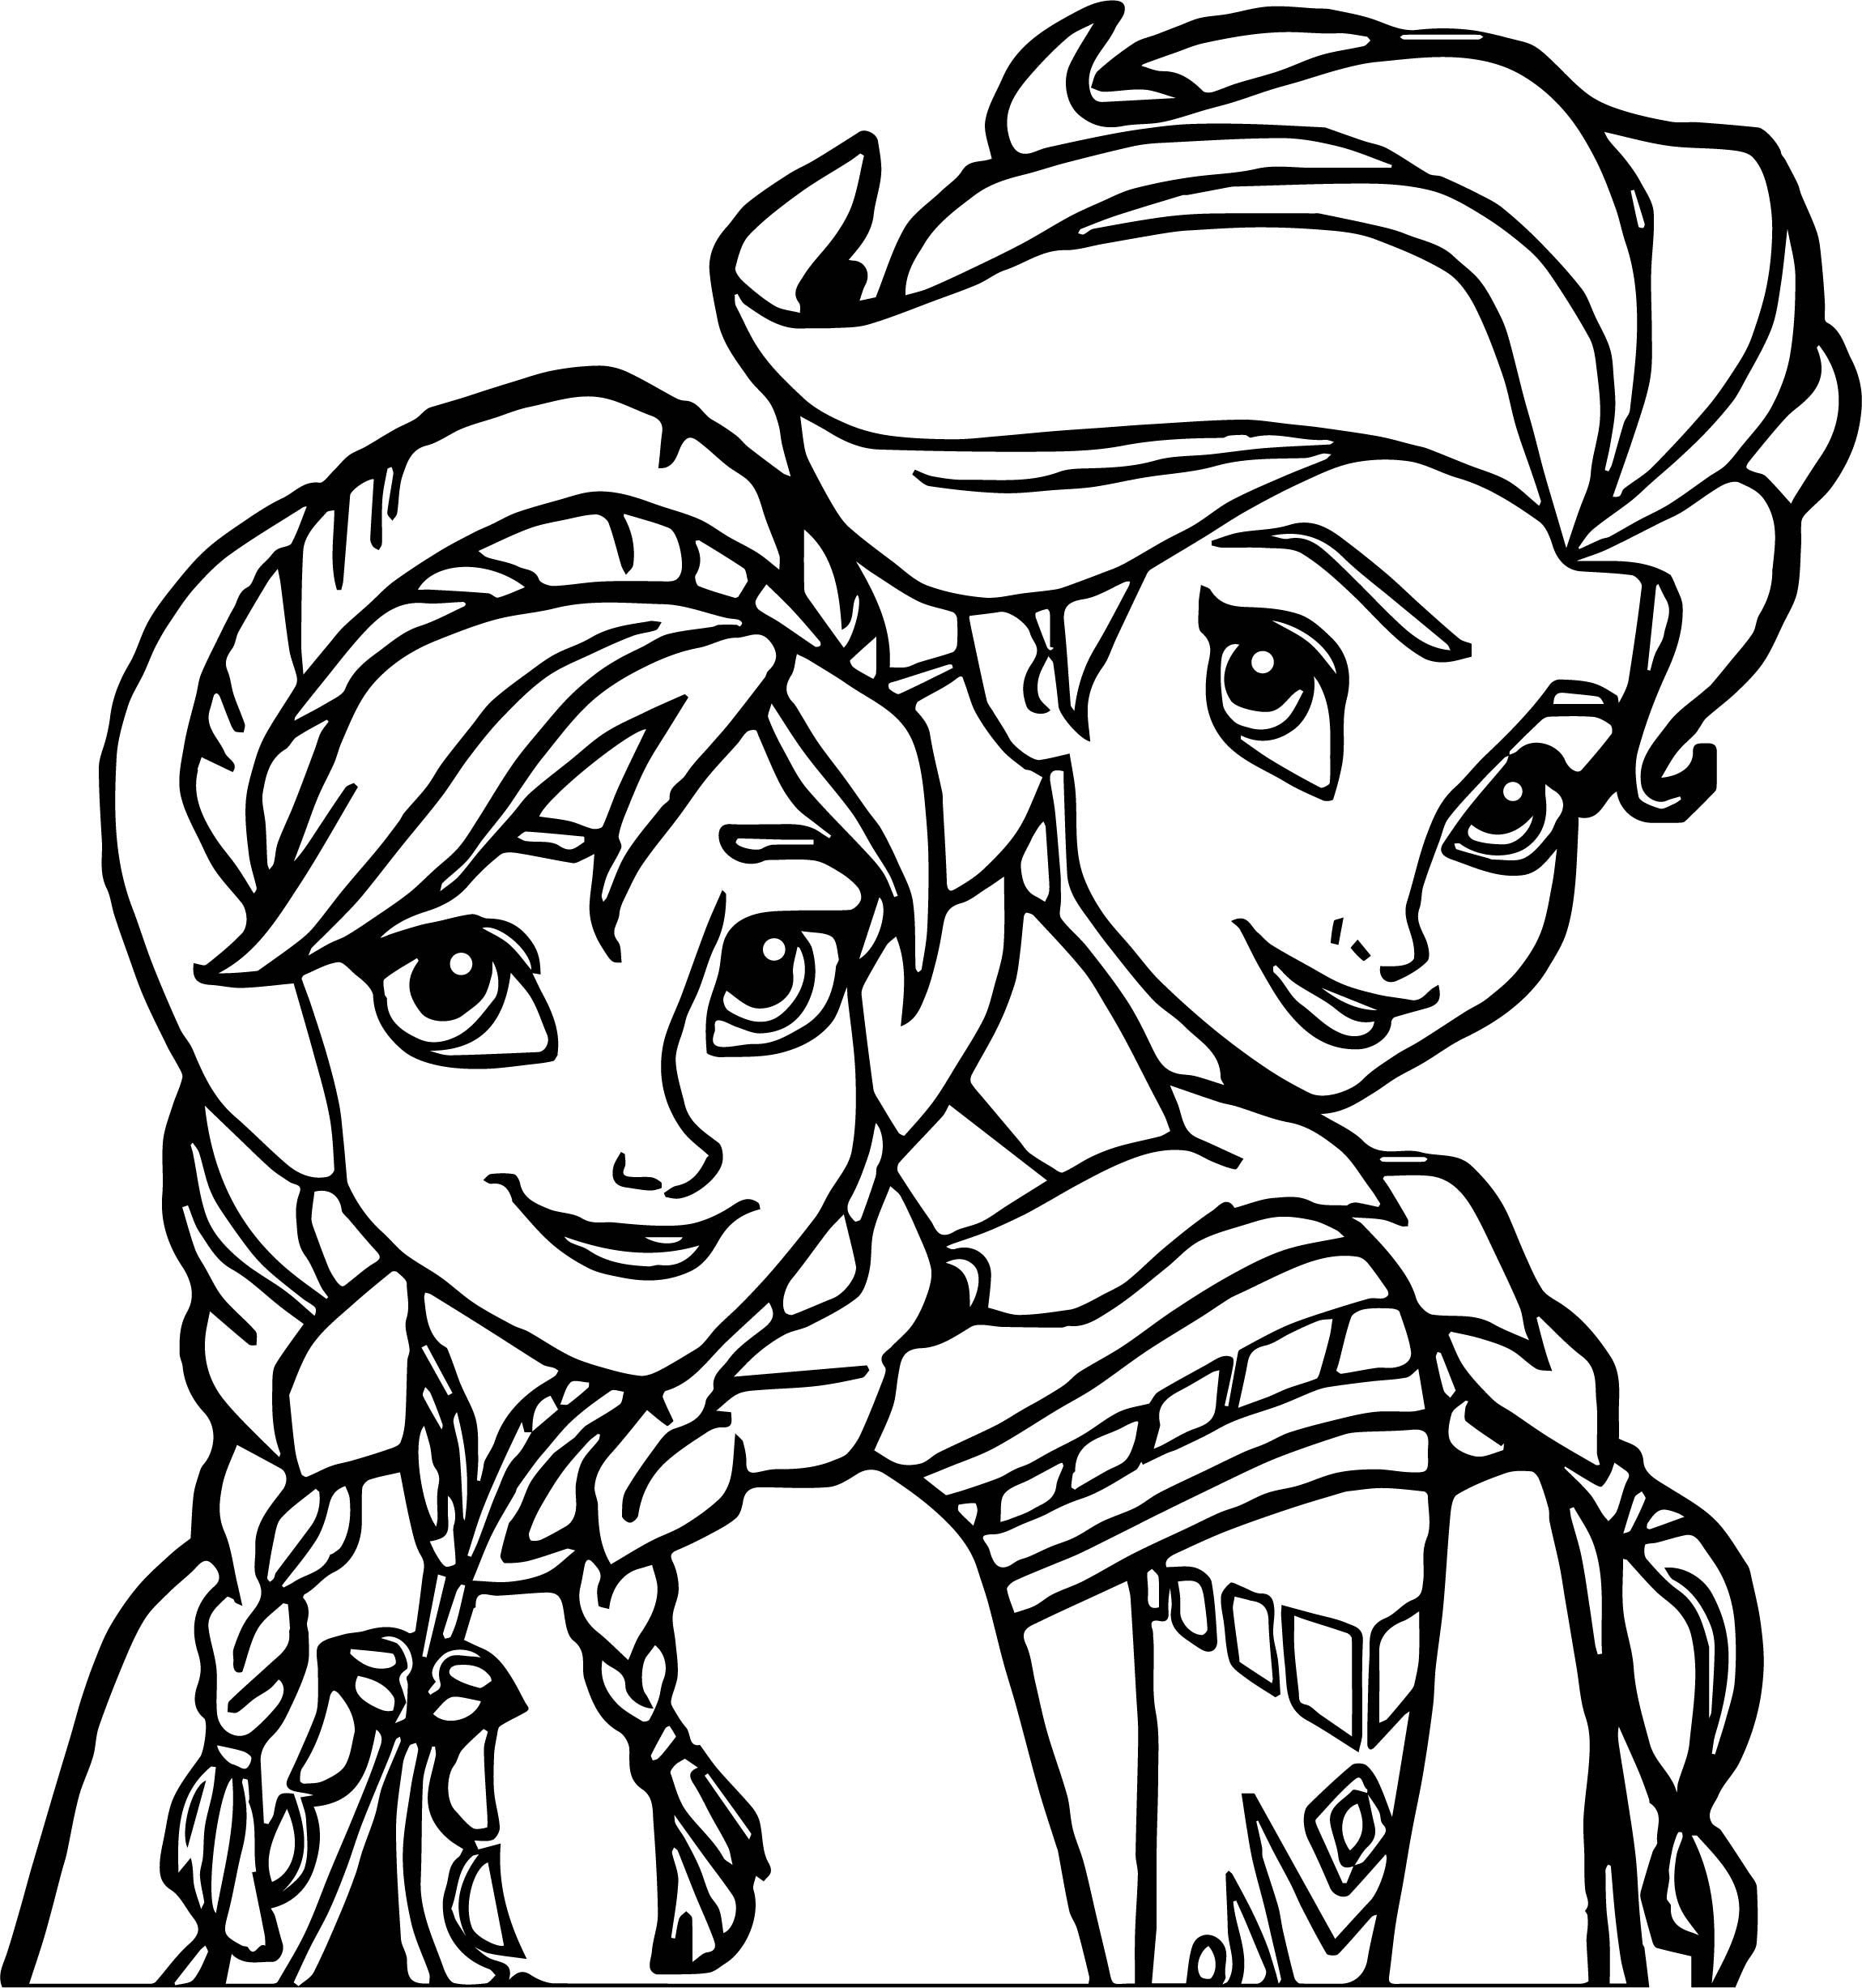 elsa anna coloring page - Elsa And Anna Coloring Pages